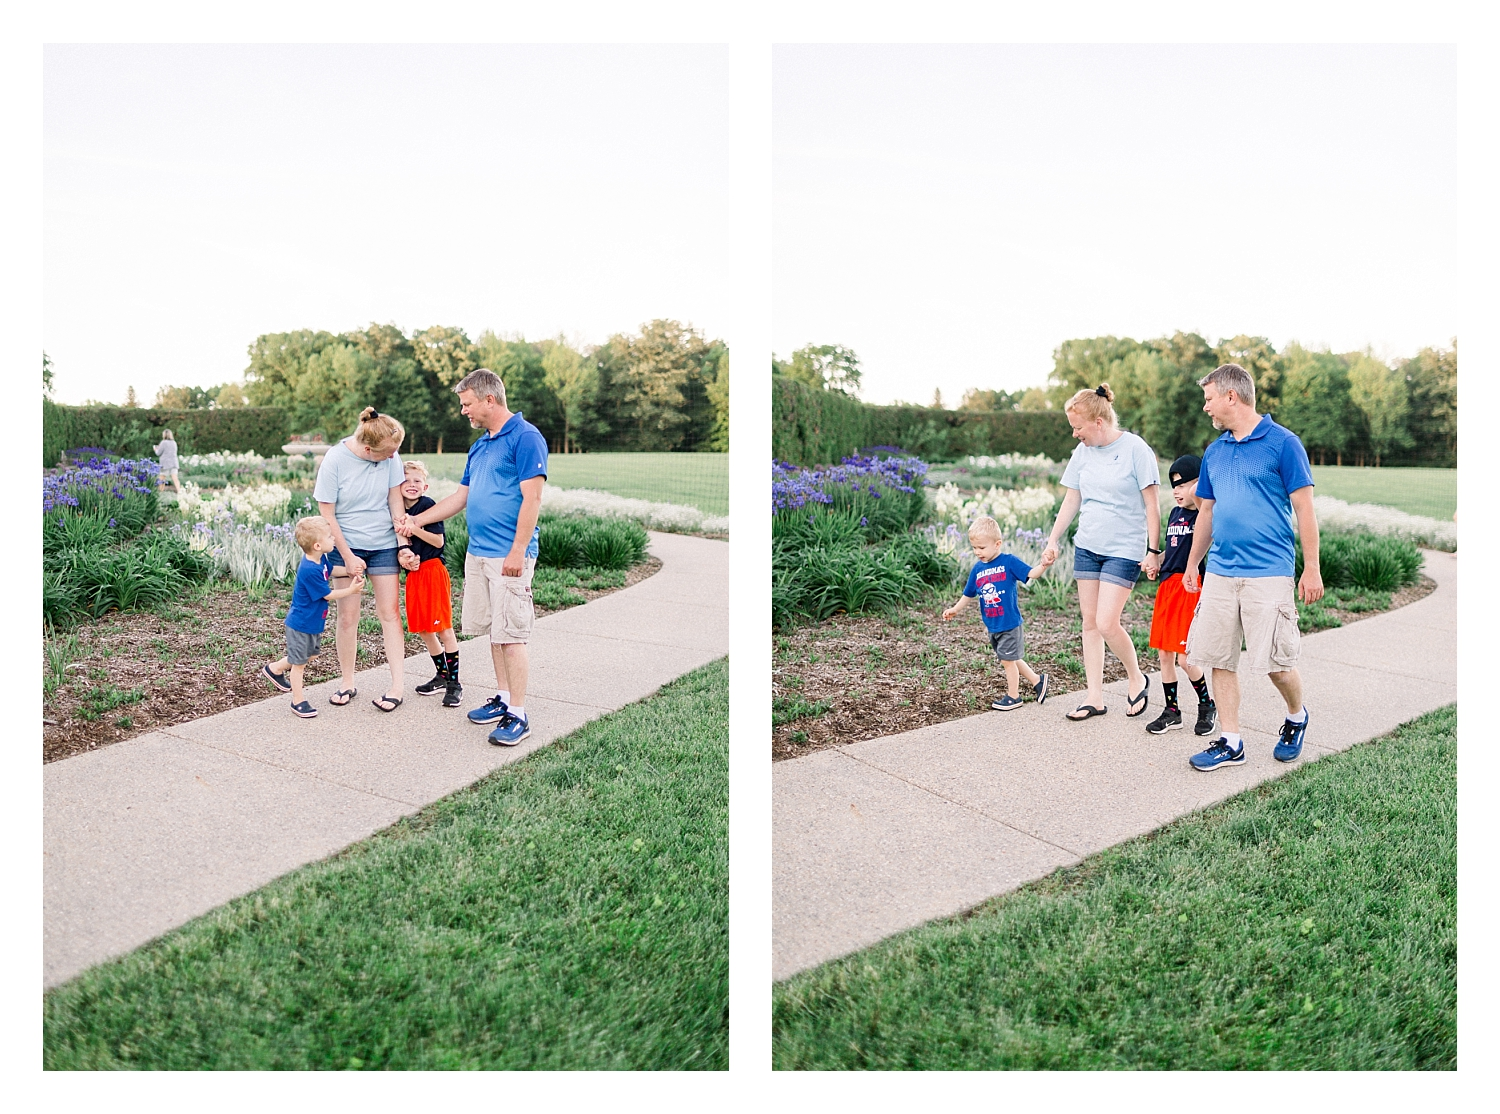 Wisconsin-Family-Photographers-Elle-x-Troy-Photography-The-Bopp-Family-Robert-Allerton-Park-Monticello-Illinois_0034.jpg